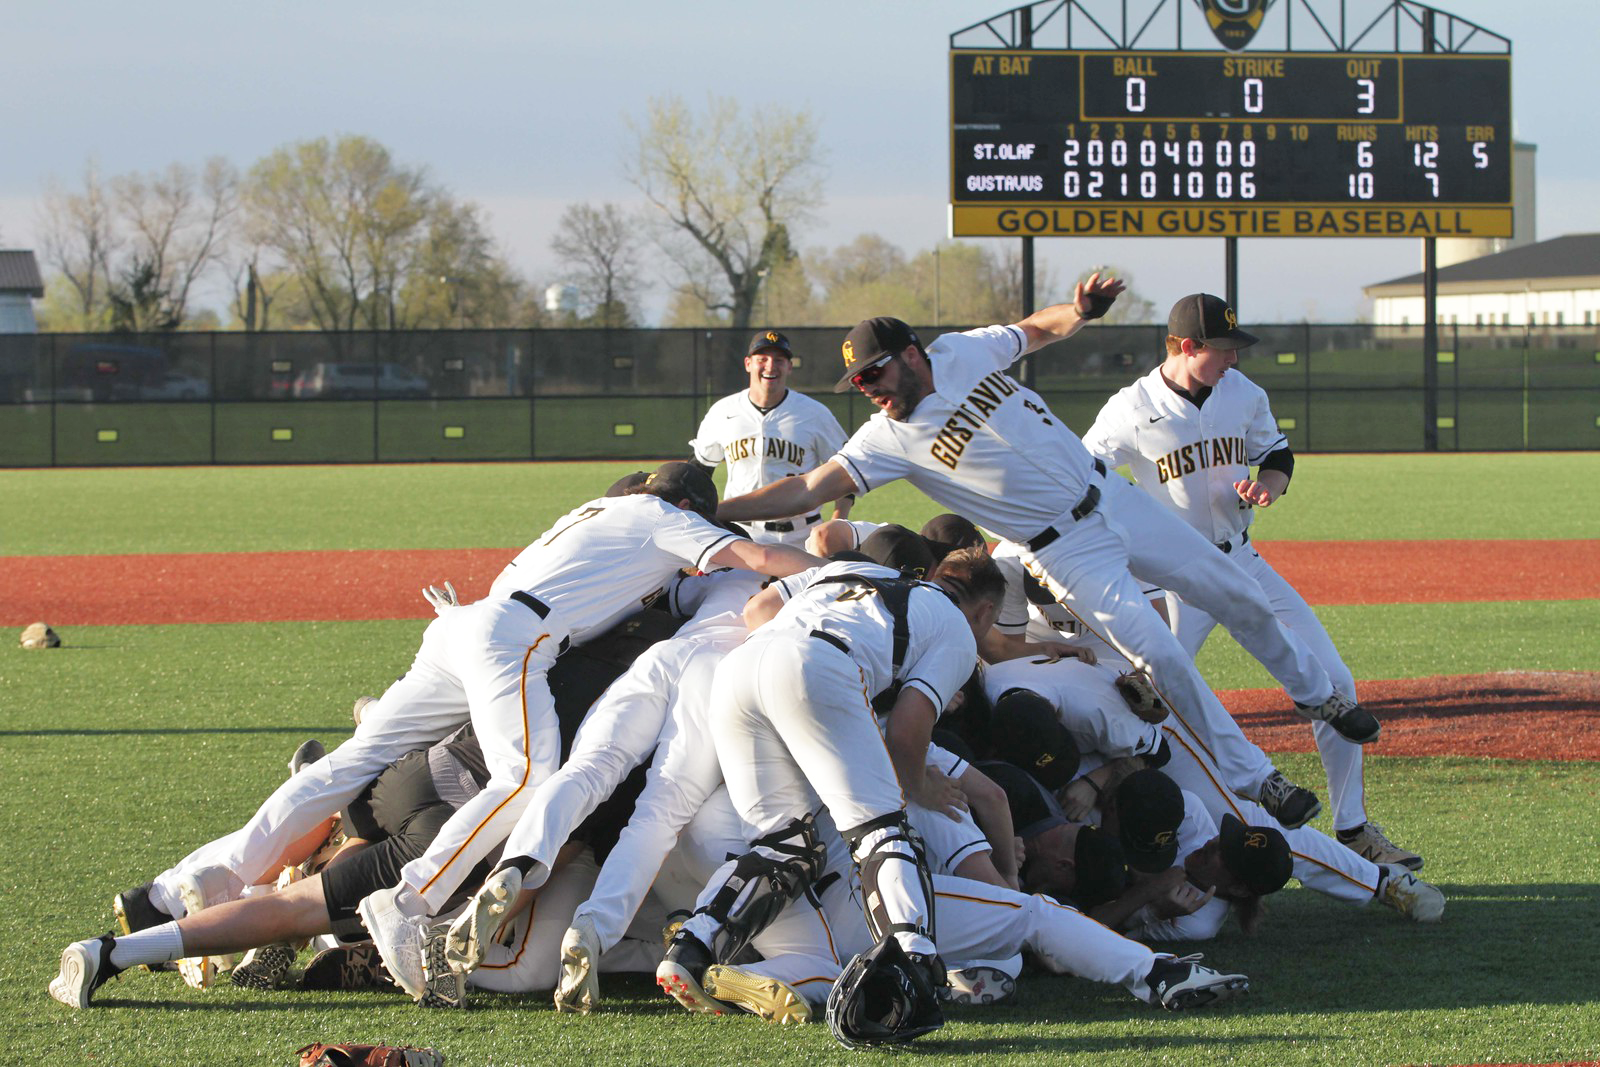 The Gustavus Men's Baseball team celebrates with a dogpile after claiming the title of this year's MIAC championship.